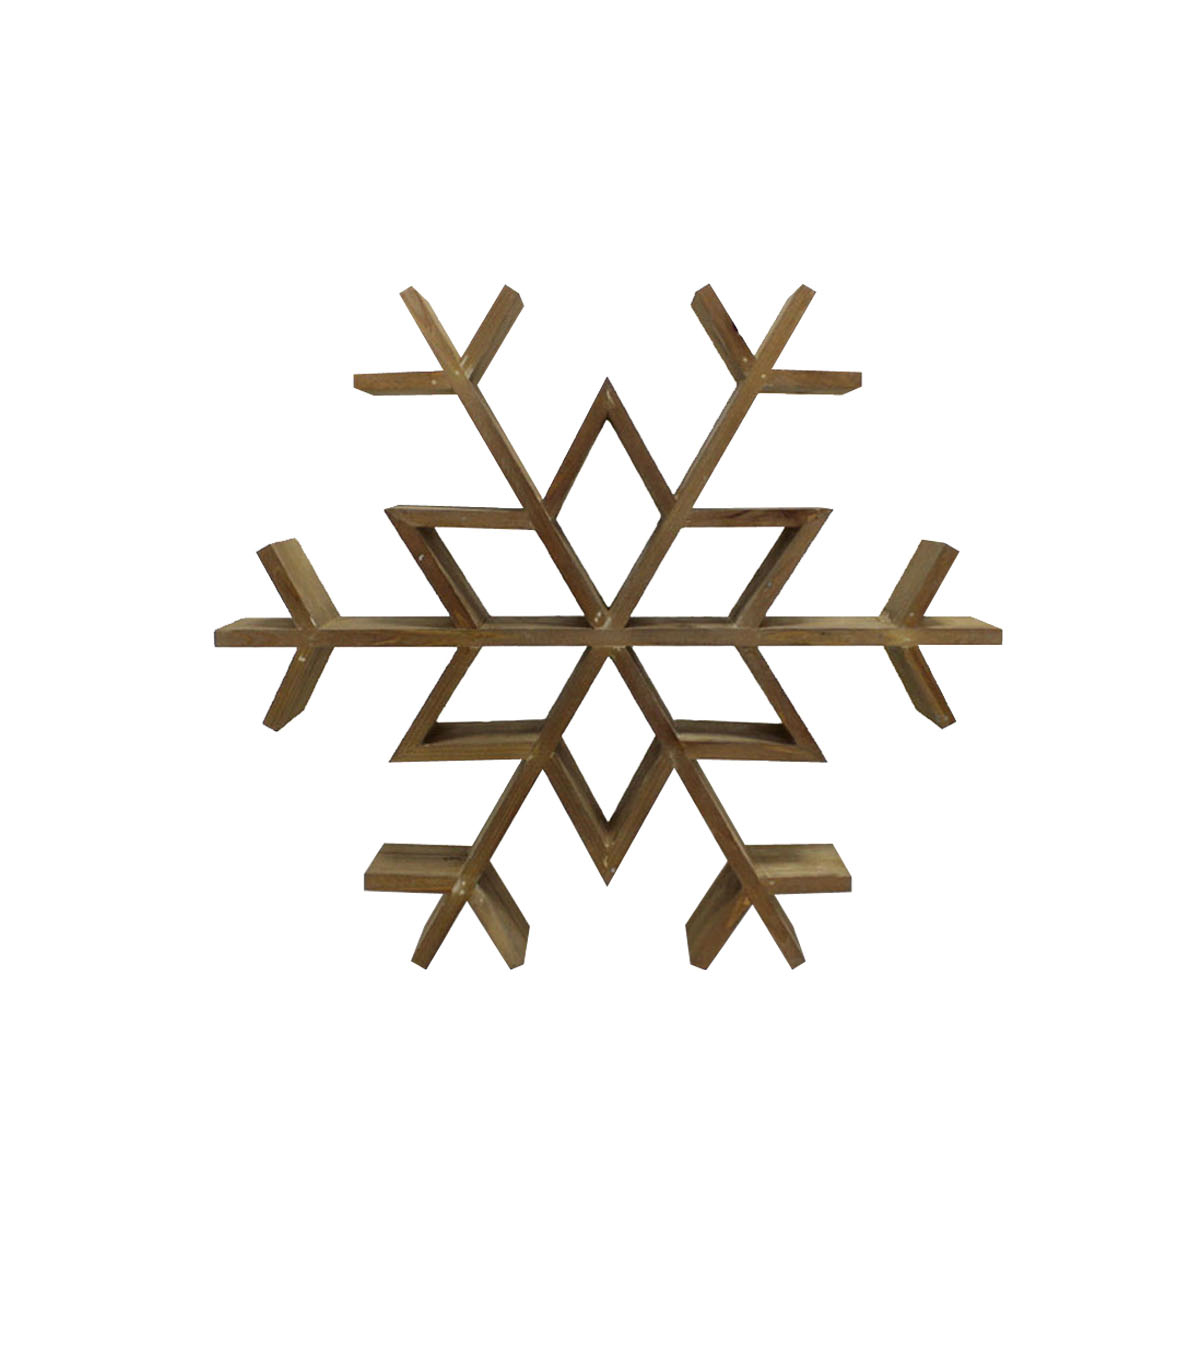 Handmade Holiday Christmas Wood Snowflake Wall Decor